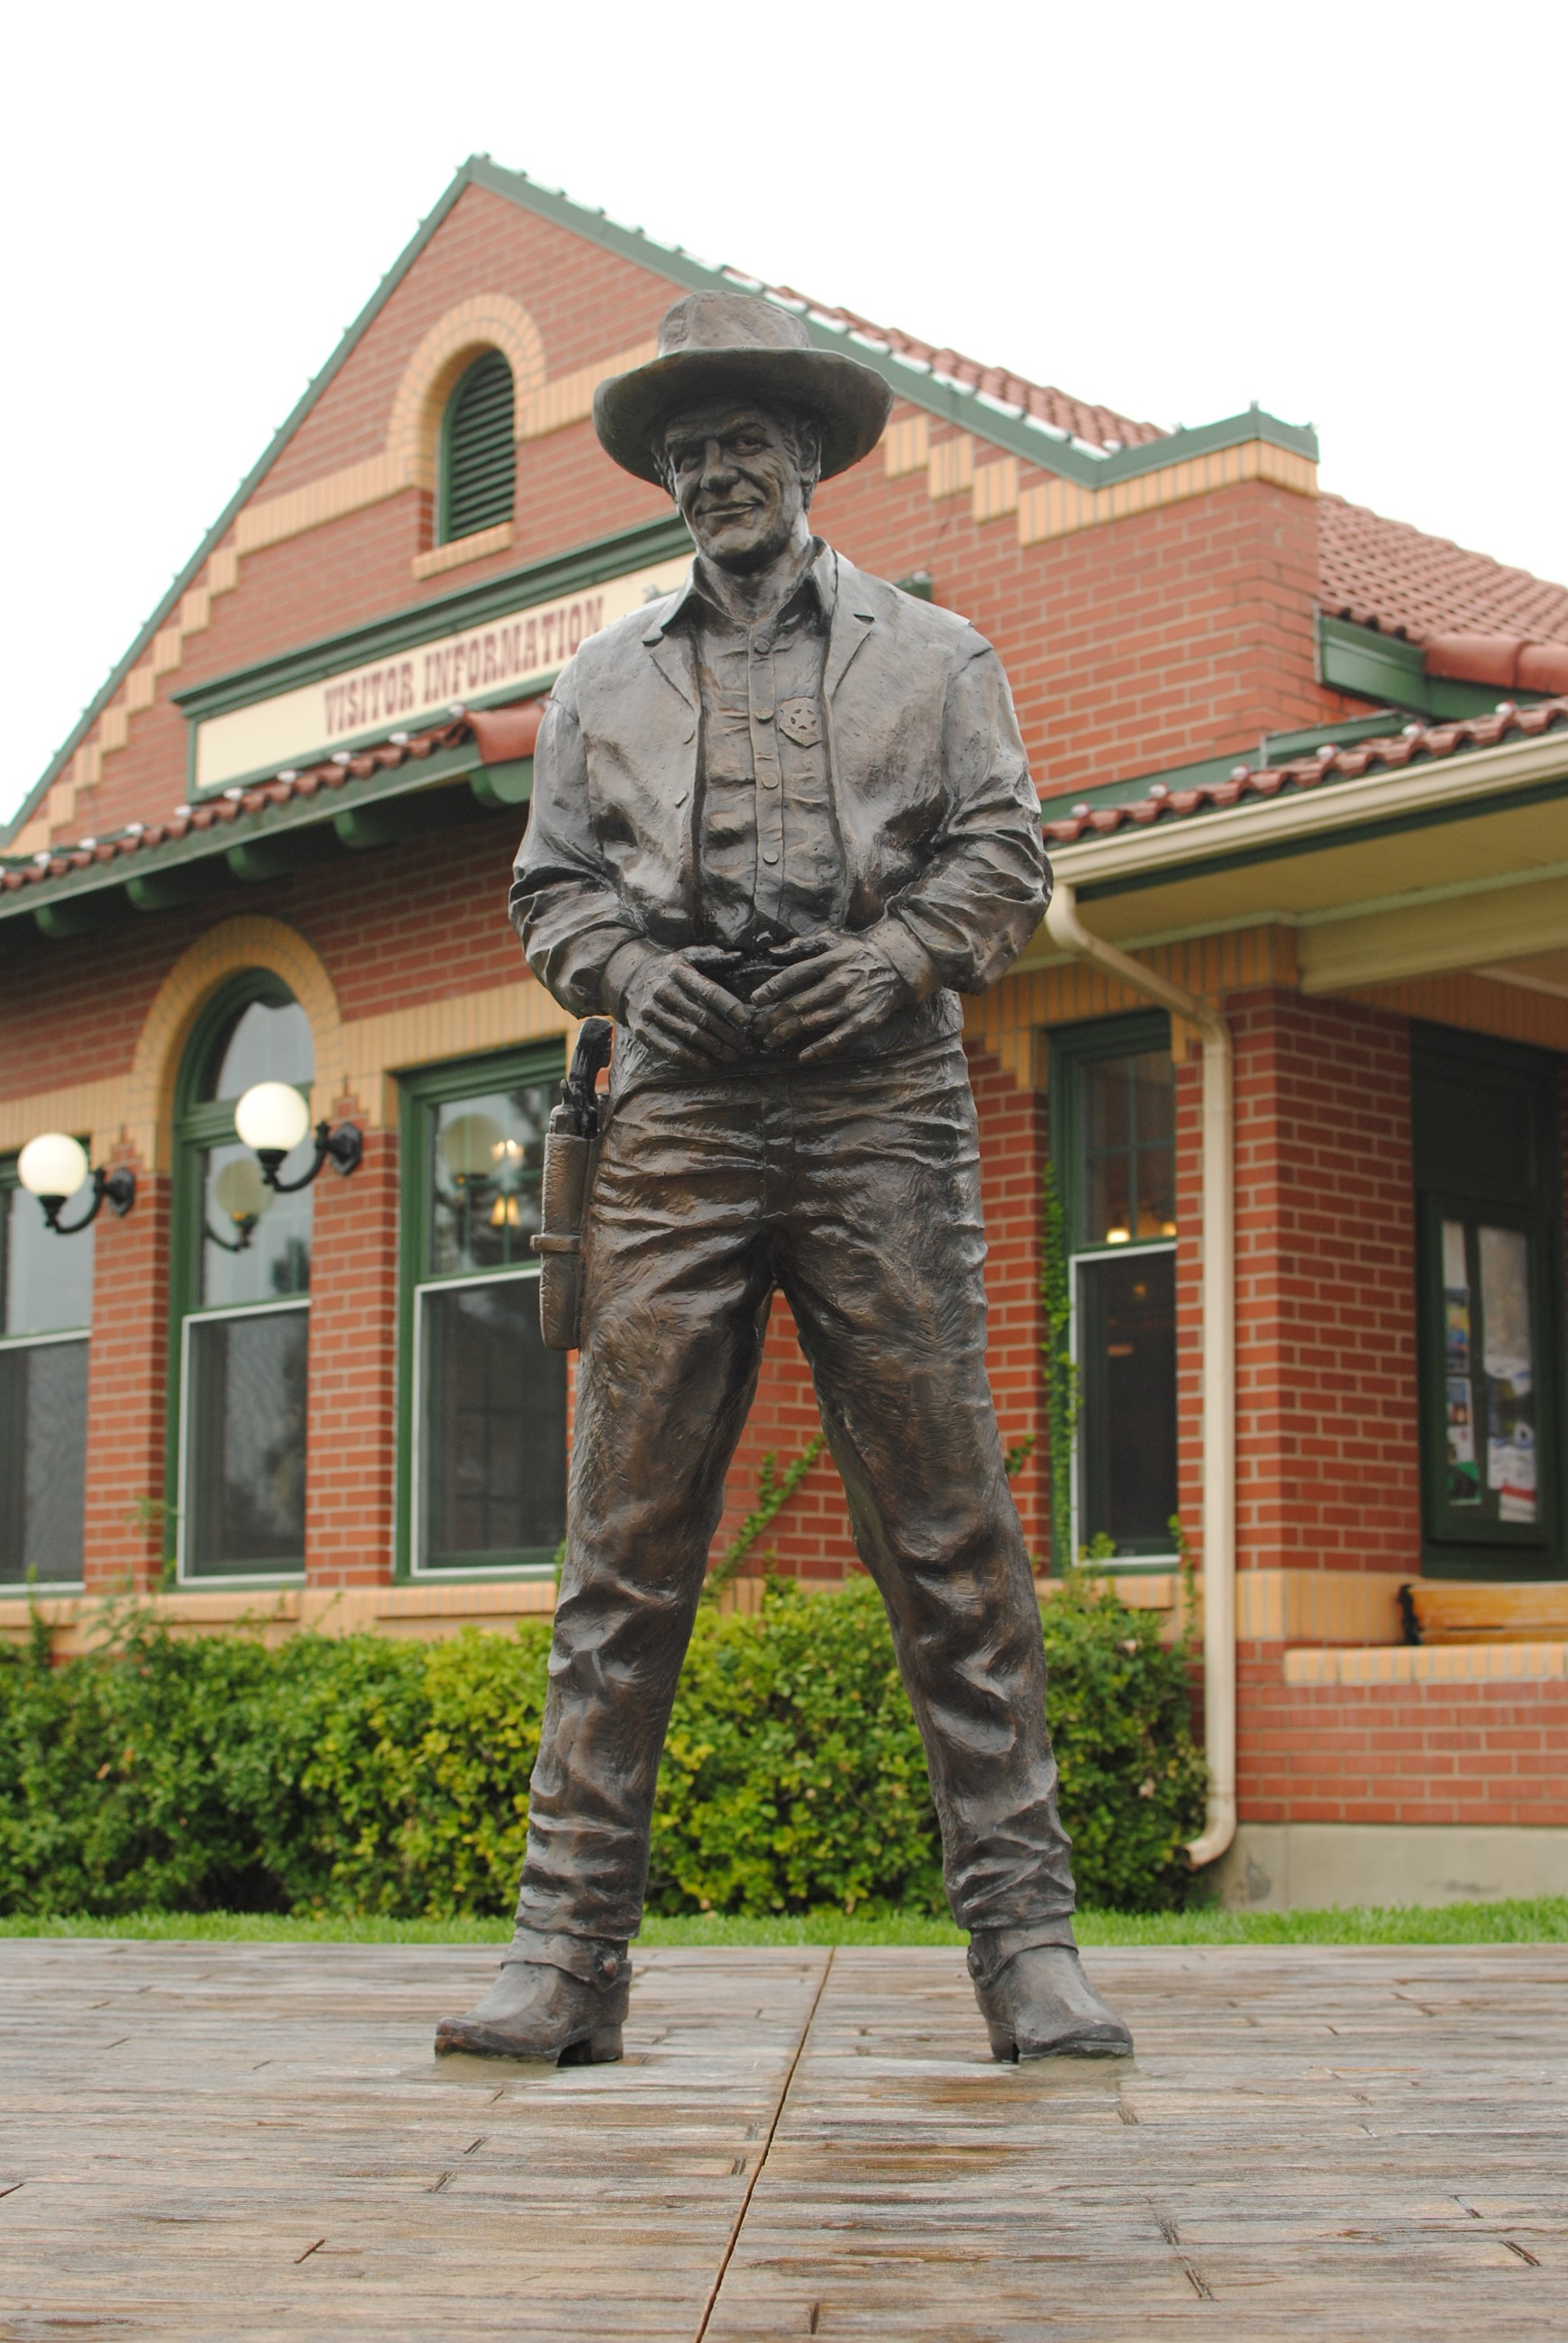 Statue in front of Visitor Information building